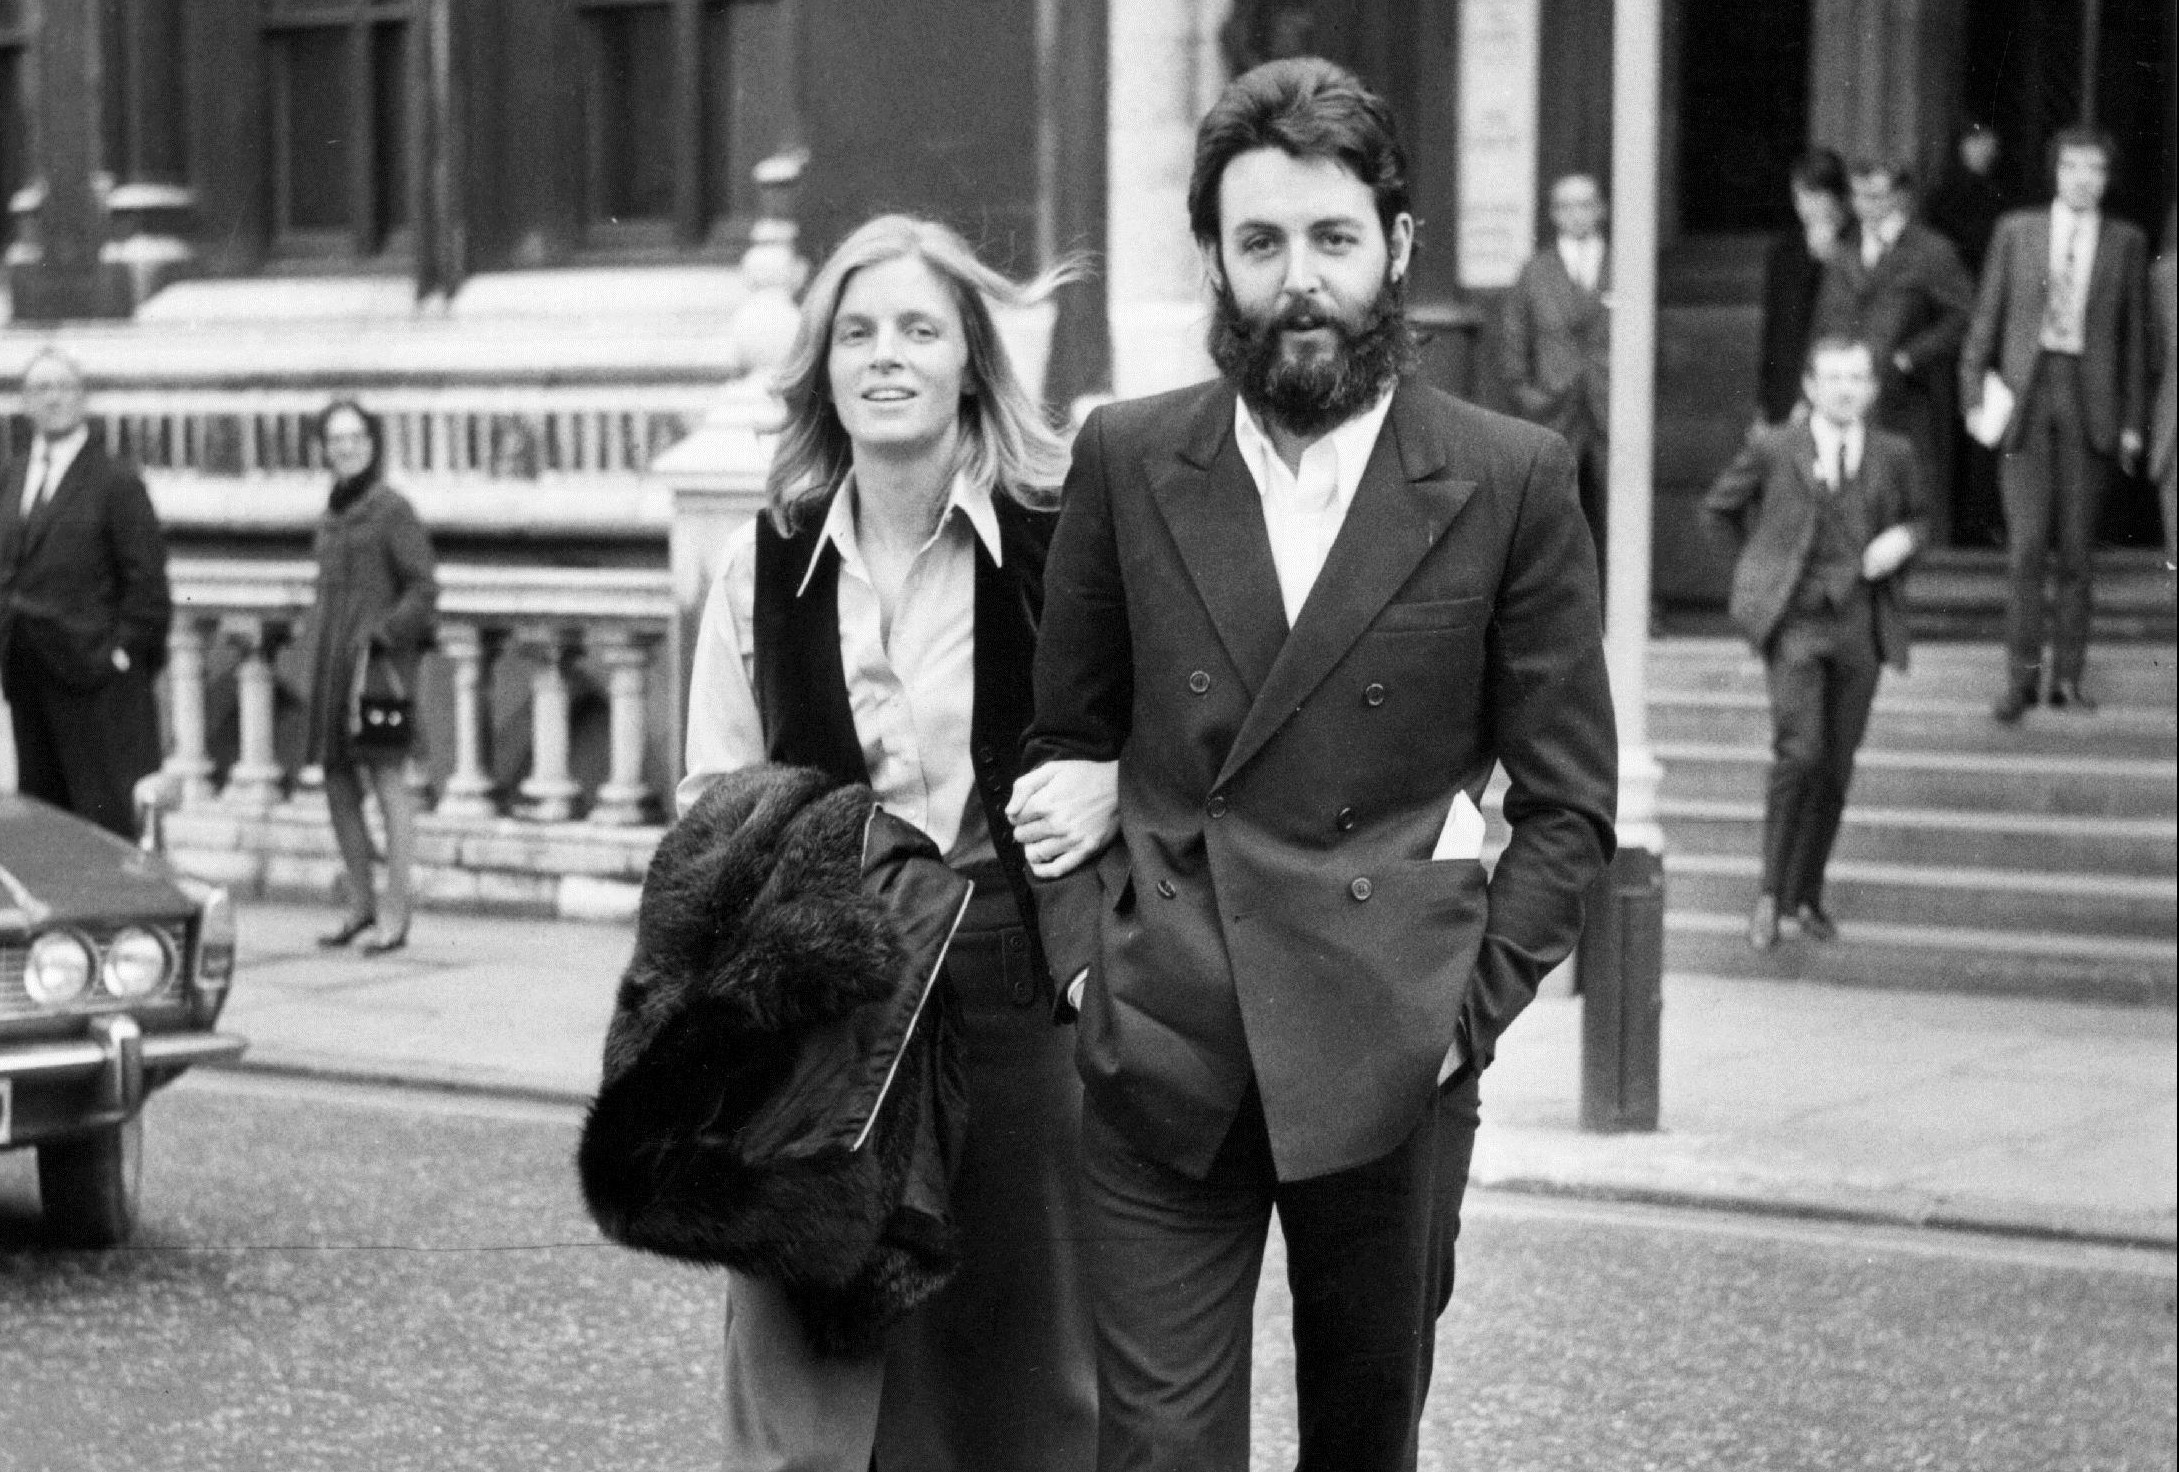 Paul and Linda (1941 - 1998) McCartney leaving court (Evening Standard/Getty Images)